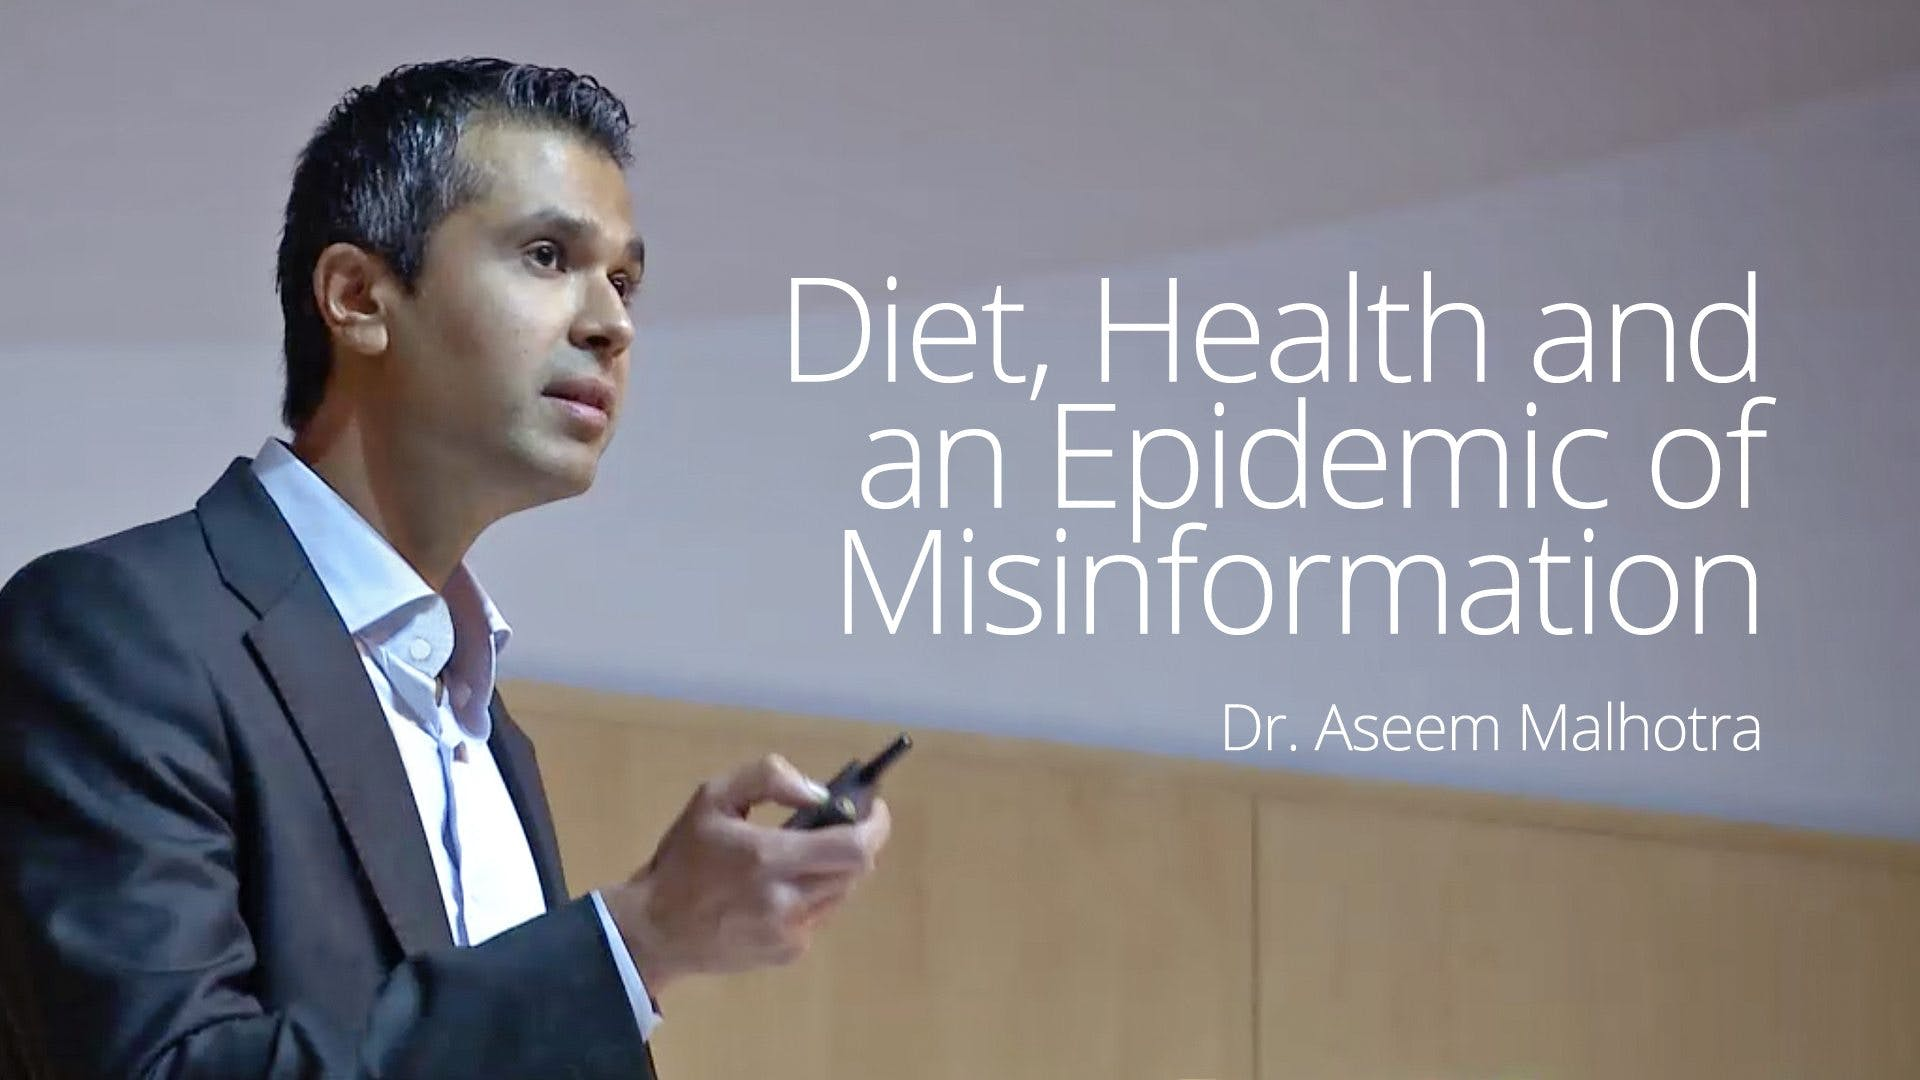 Diet, Health and an Epidemic of Misinformation  – Dr. Aseem Malhotra